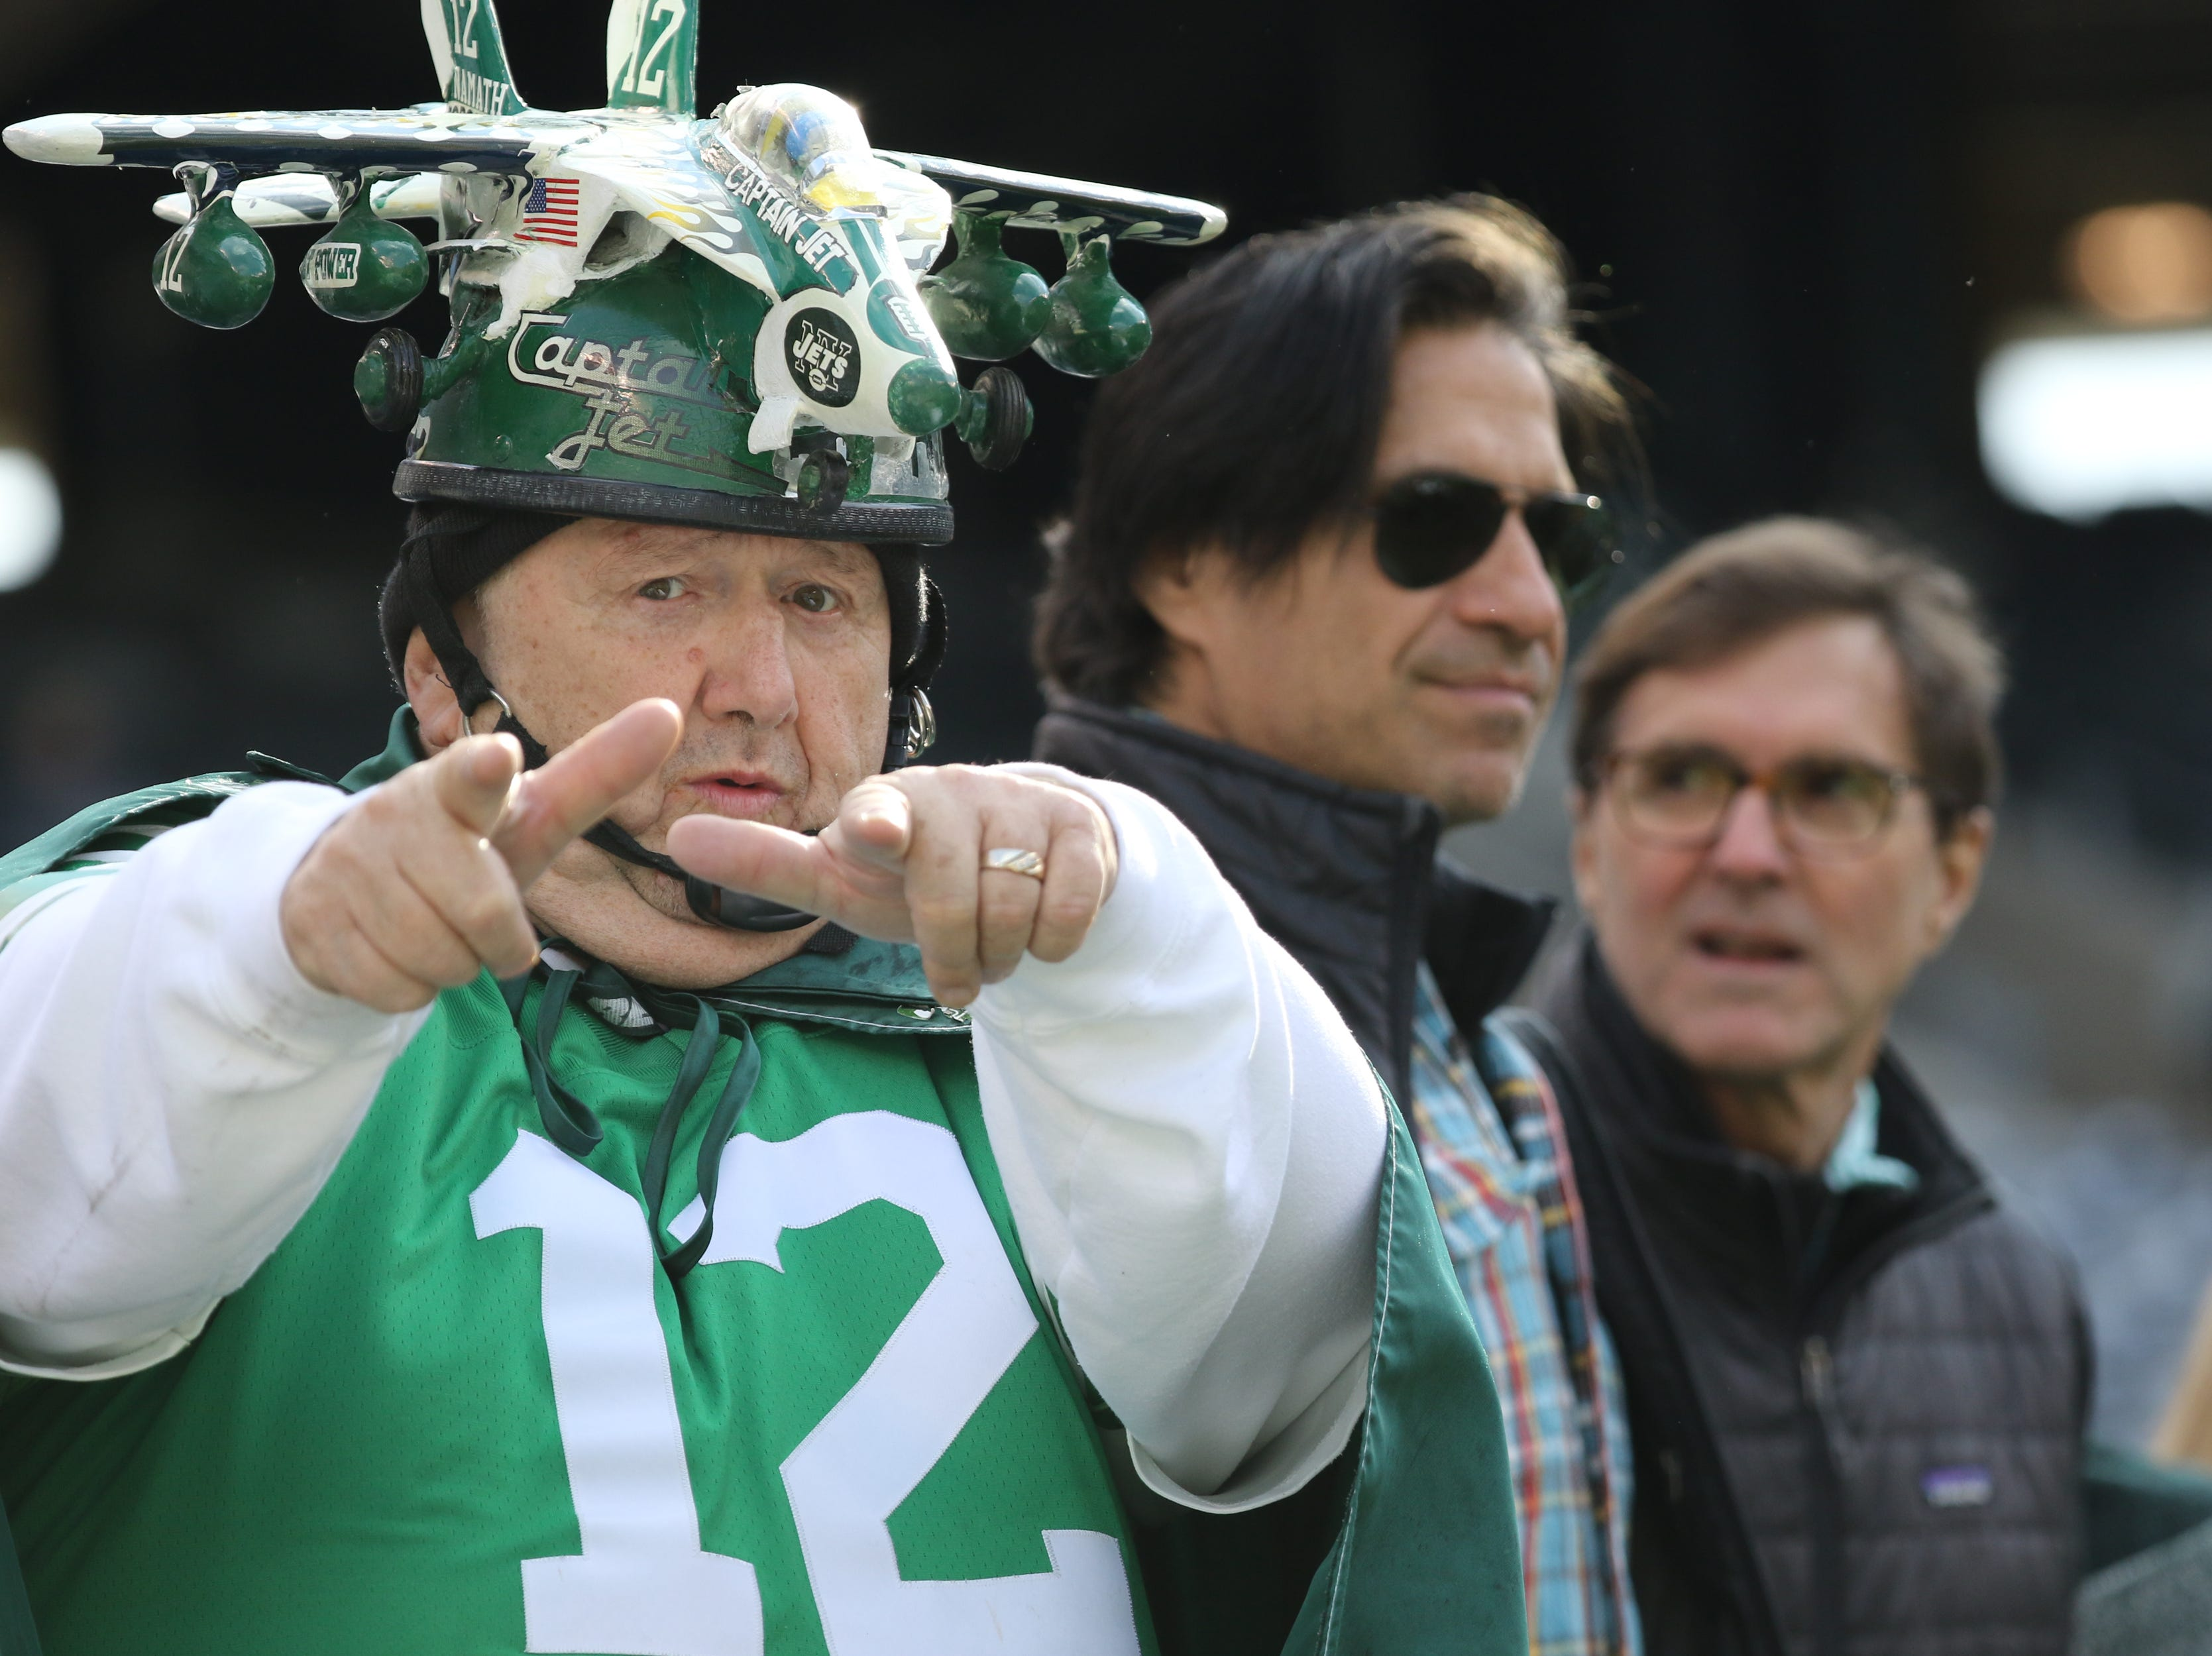 A Jets fan is ready for the game to start at MetLife Stadium. November 25, 2018